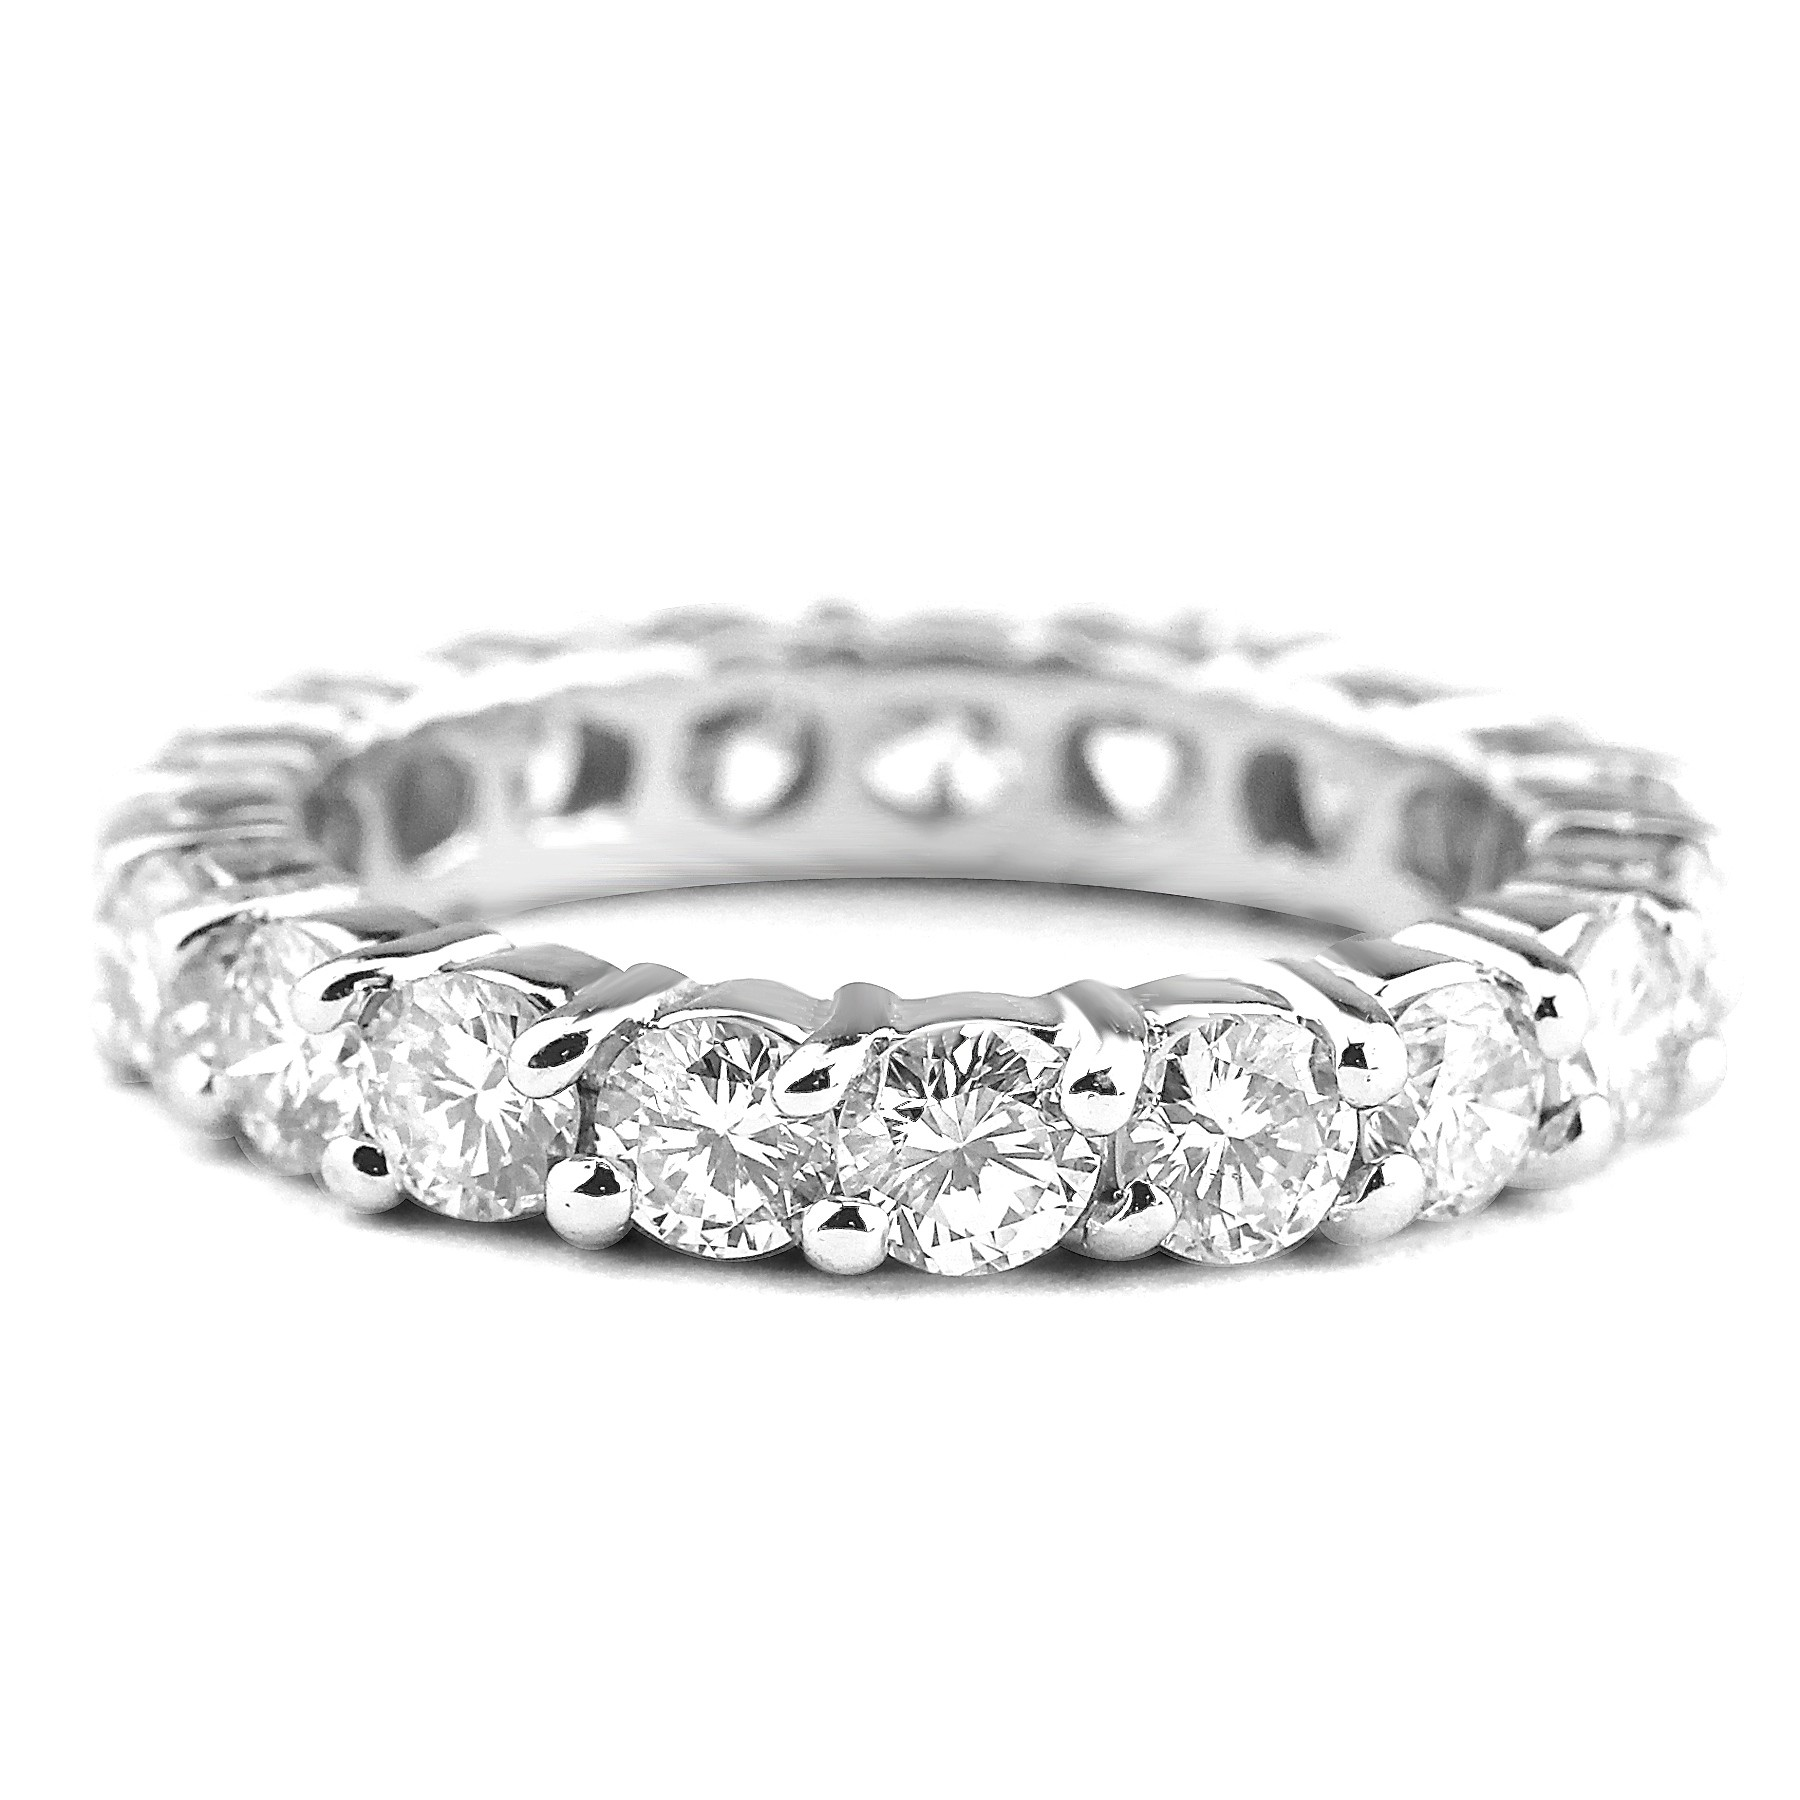 blog five engagement eternity wedding band diamond extraordinary ritani bands